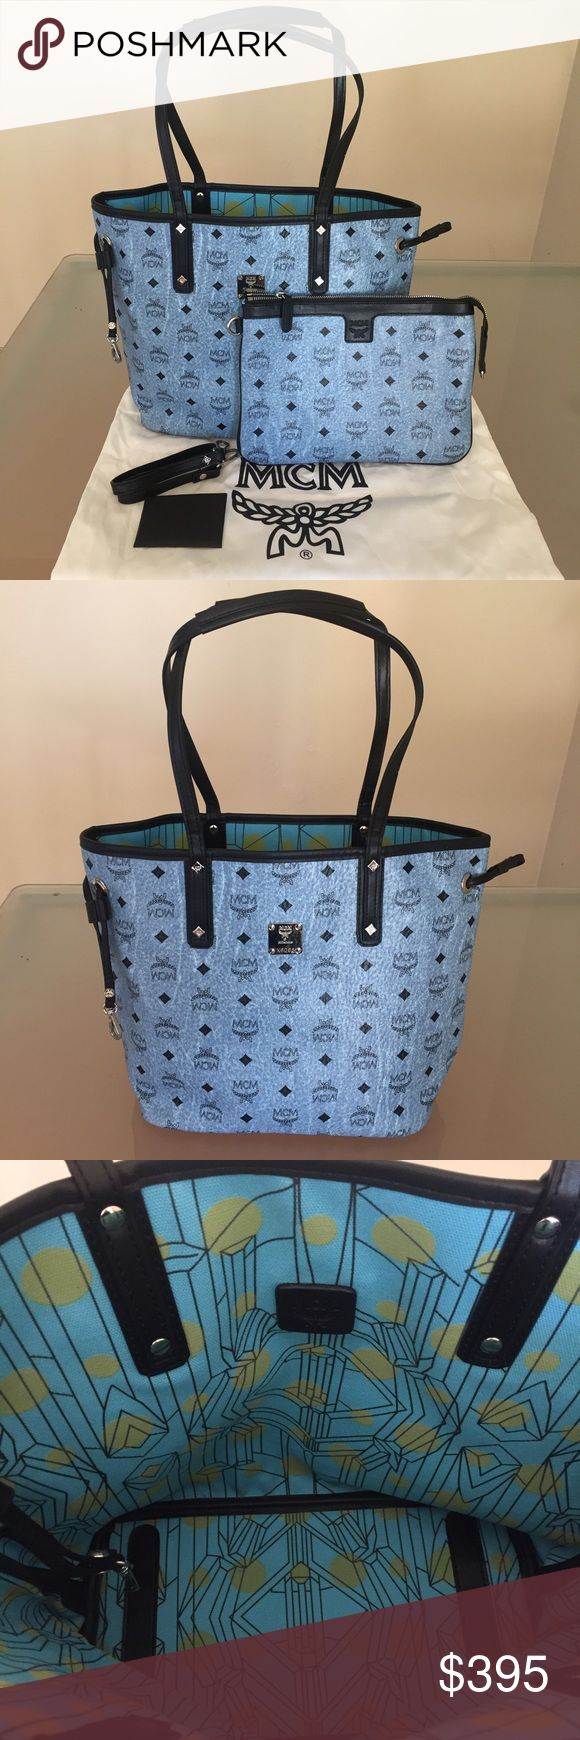 MCM Bag Reversible Blue MCM Tote Authentic MCM Bag Reversible Blue MCM Tote Authentic Guaranteed.  If you like this, you'll definitely love my other listings. check em out ^_^ MCM Bags Totes